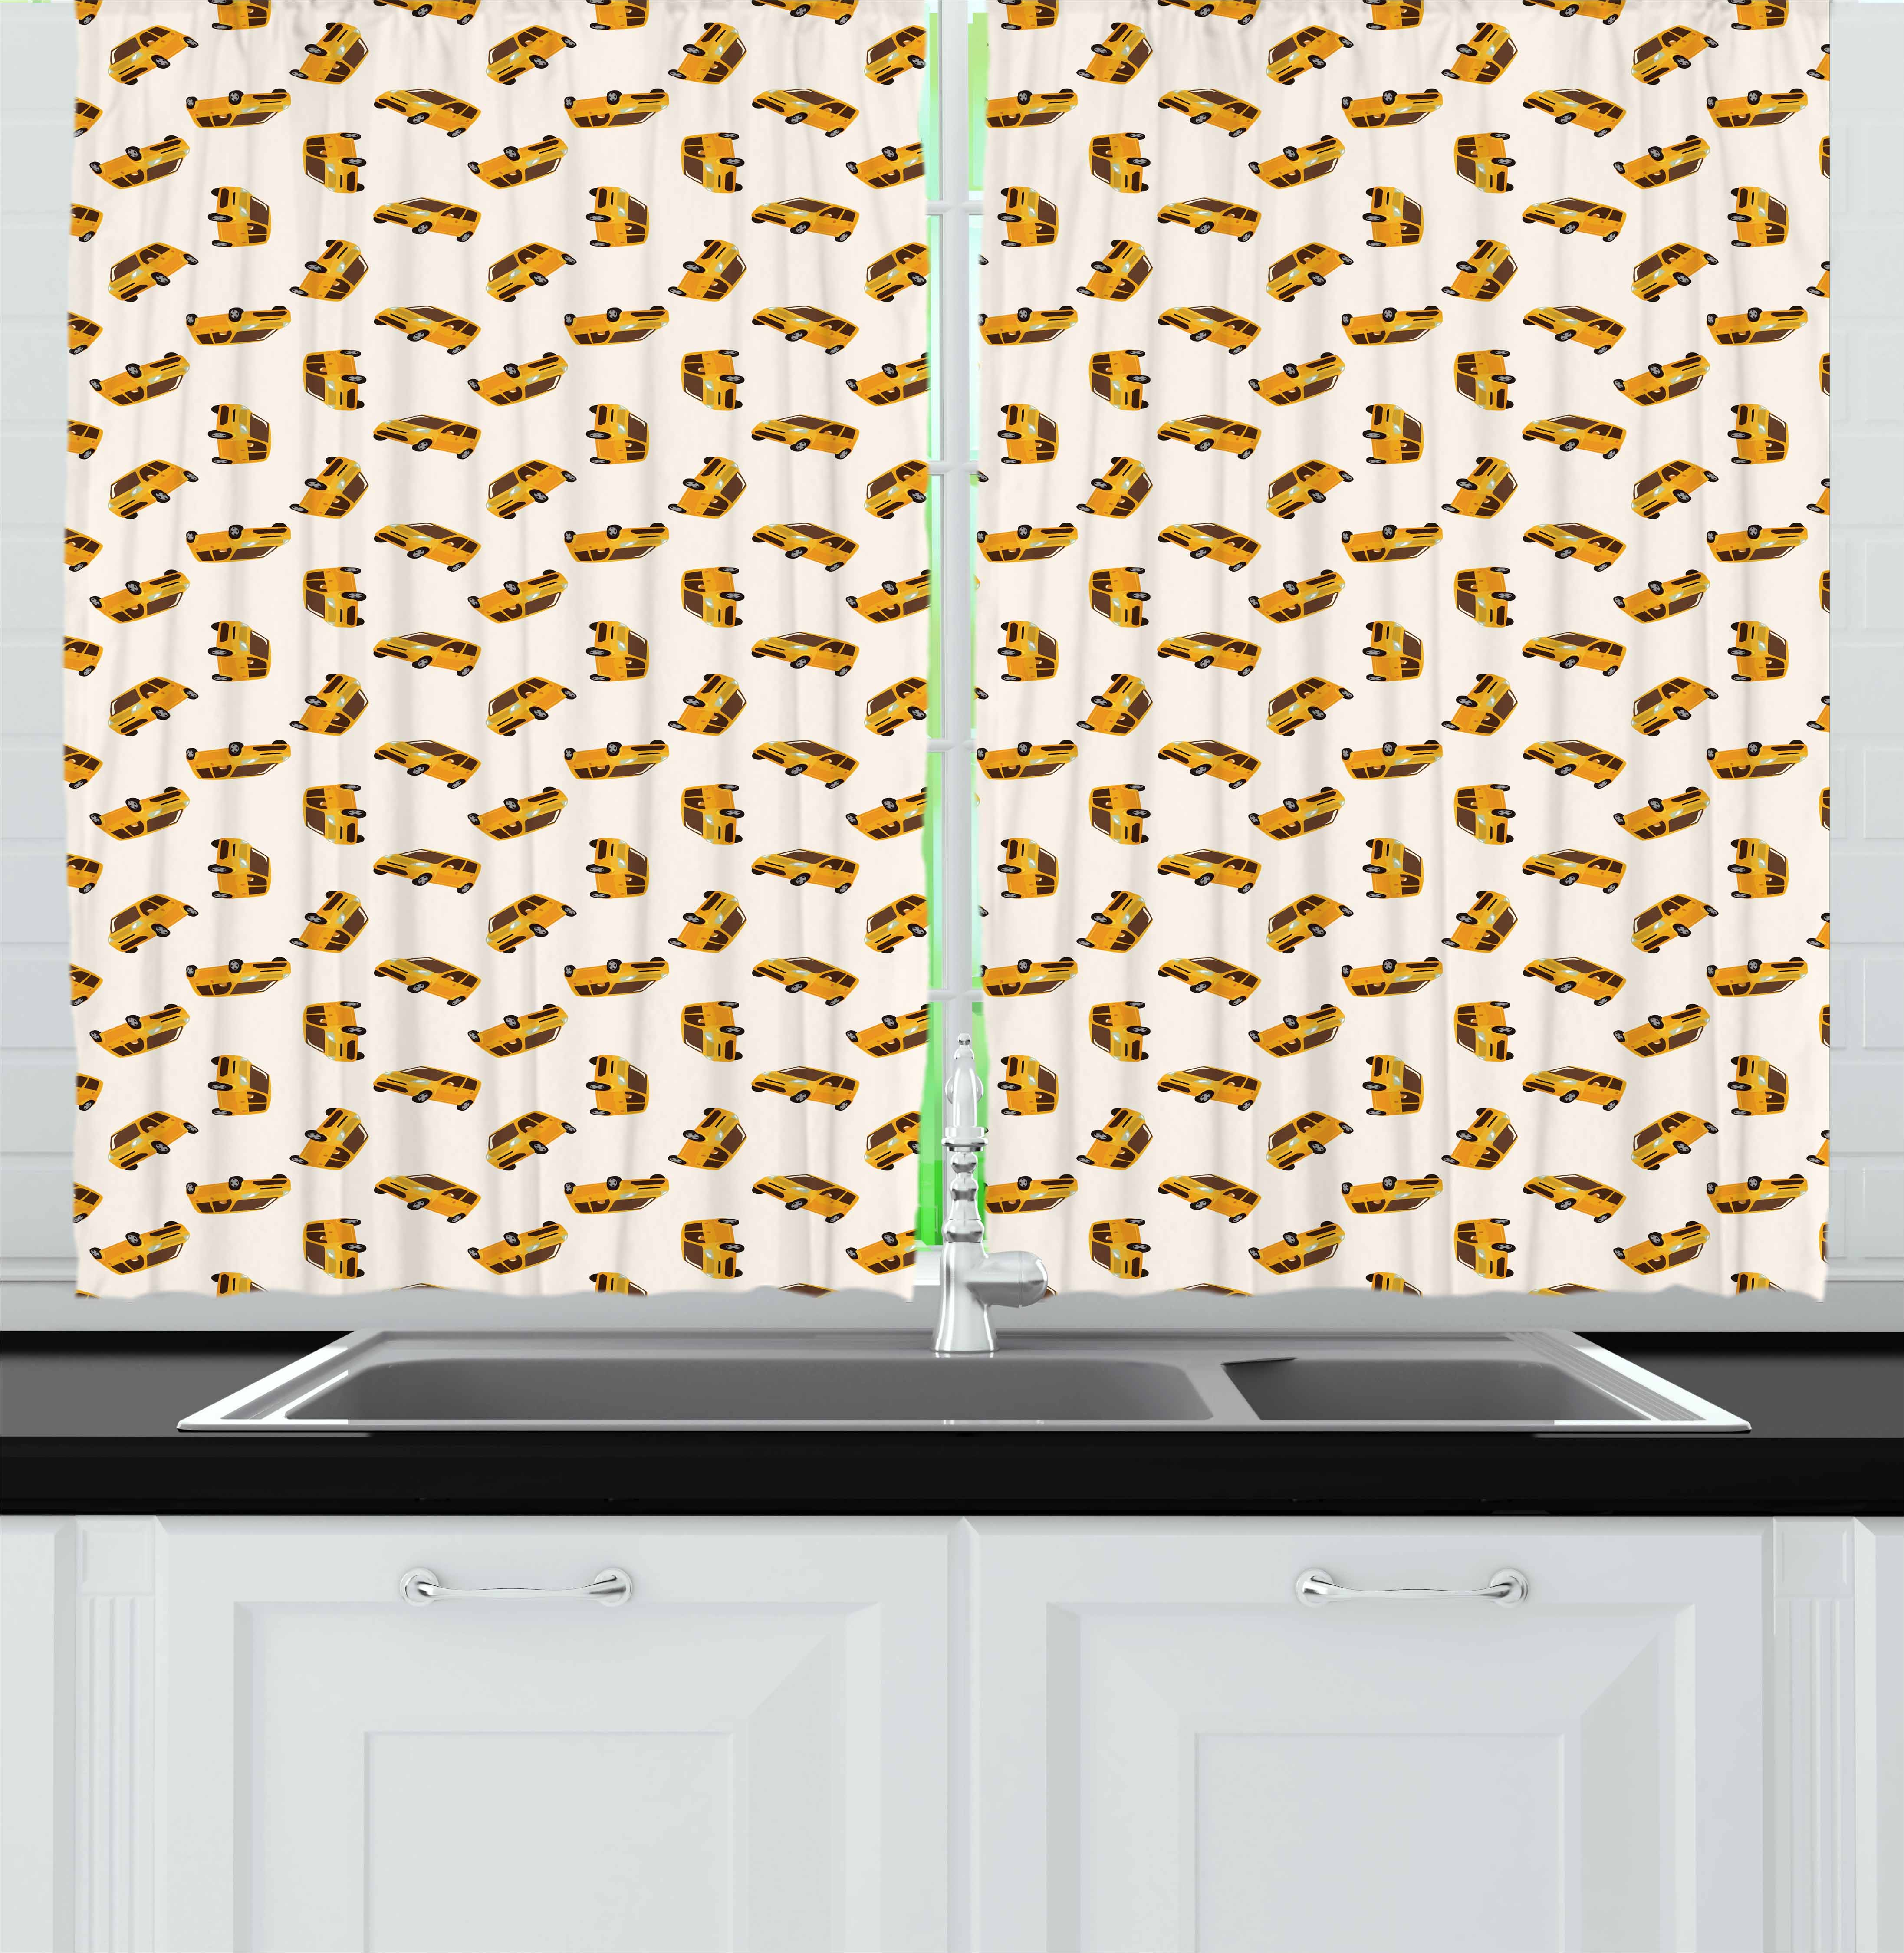 Car Curtains 2 Panels Set, Cartoon Style Automobiles Transportation Theme Vehicles for Boys Kids Nursery, Window Drapes for Living Room Bedroom, 55W X 39L Inches, Marigold Brown Black, by Ambesonne